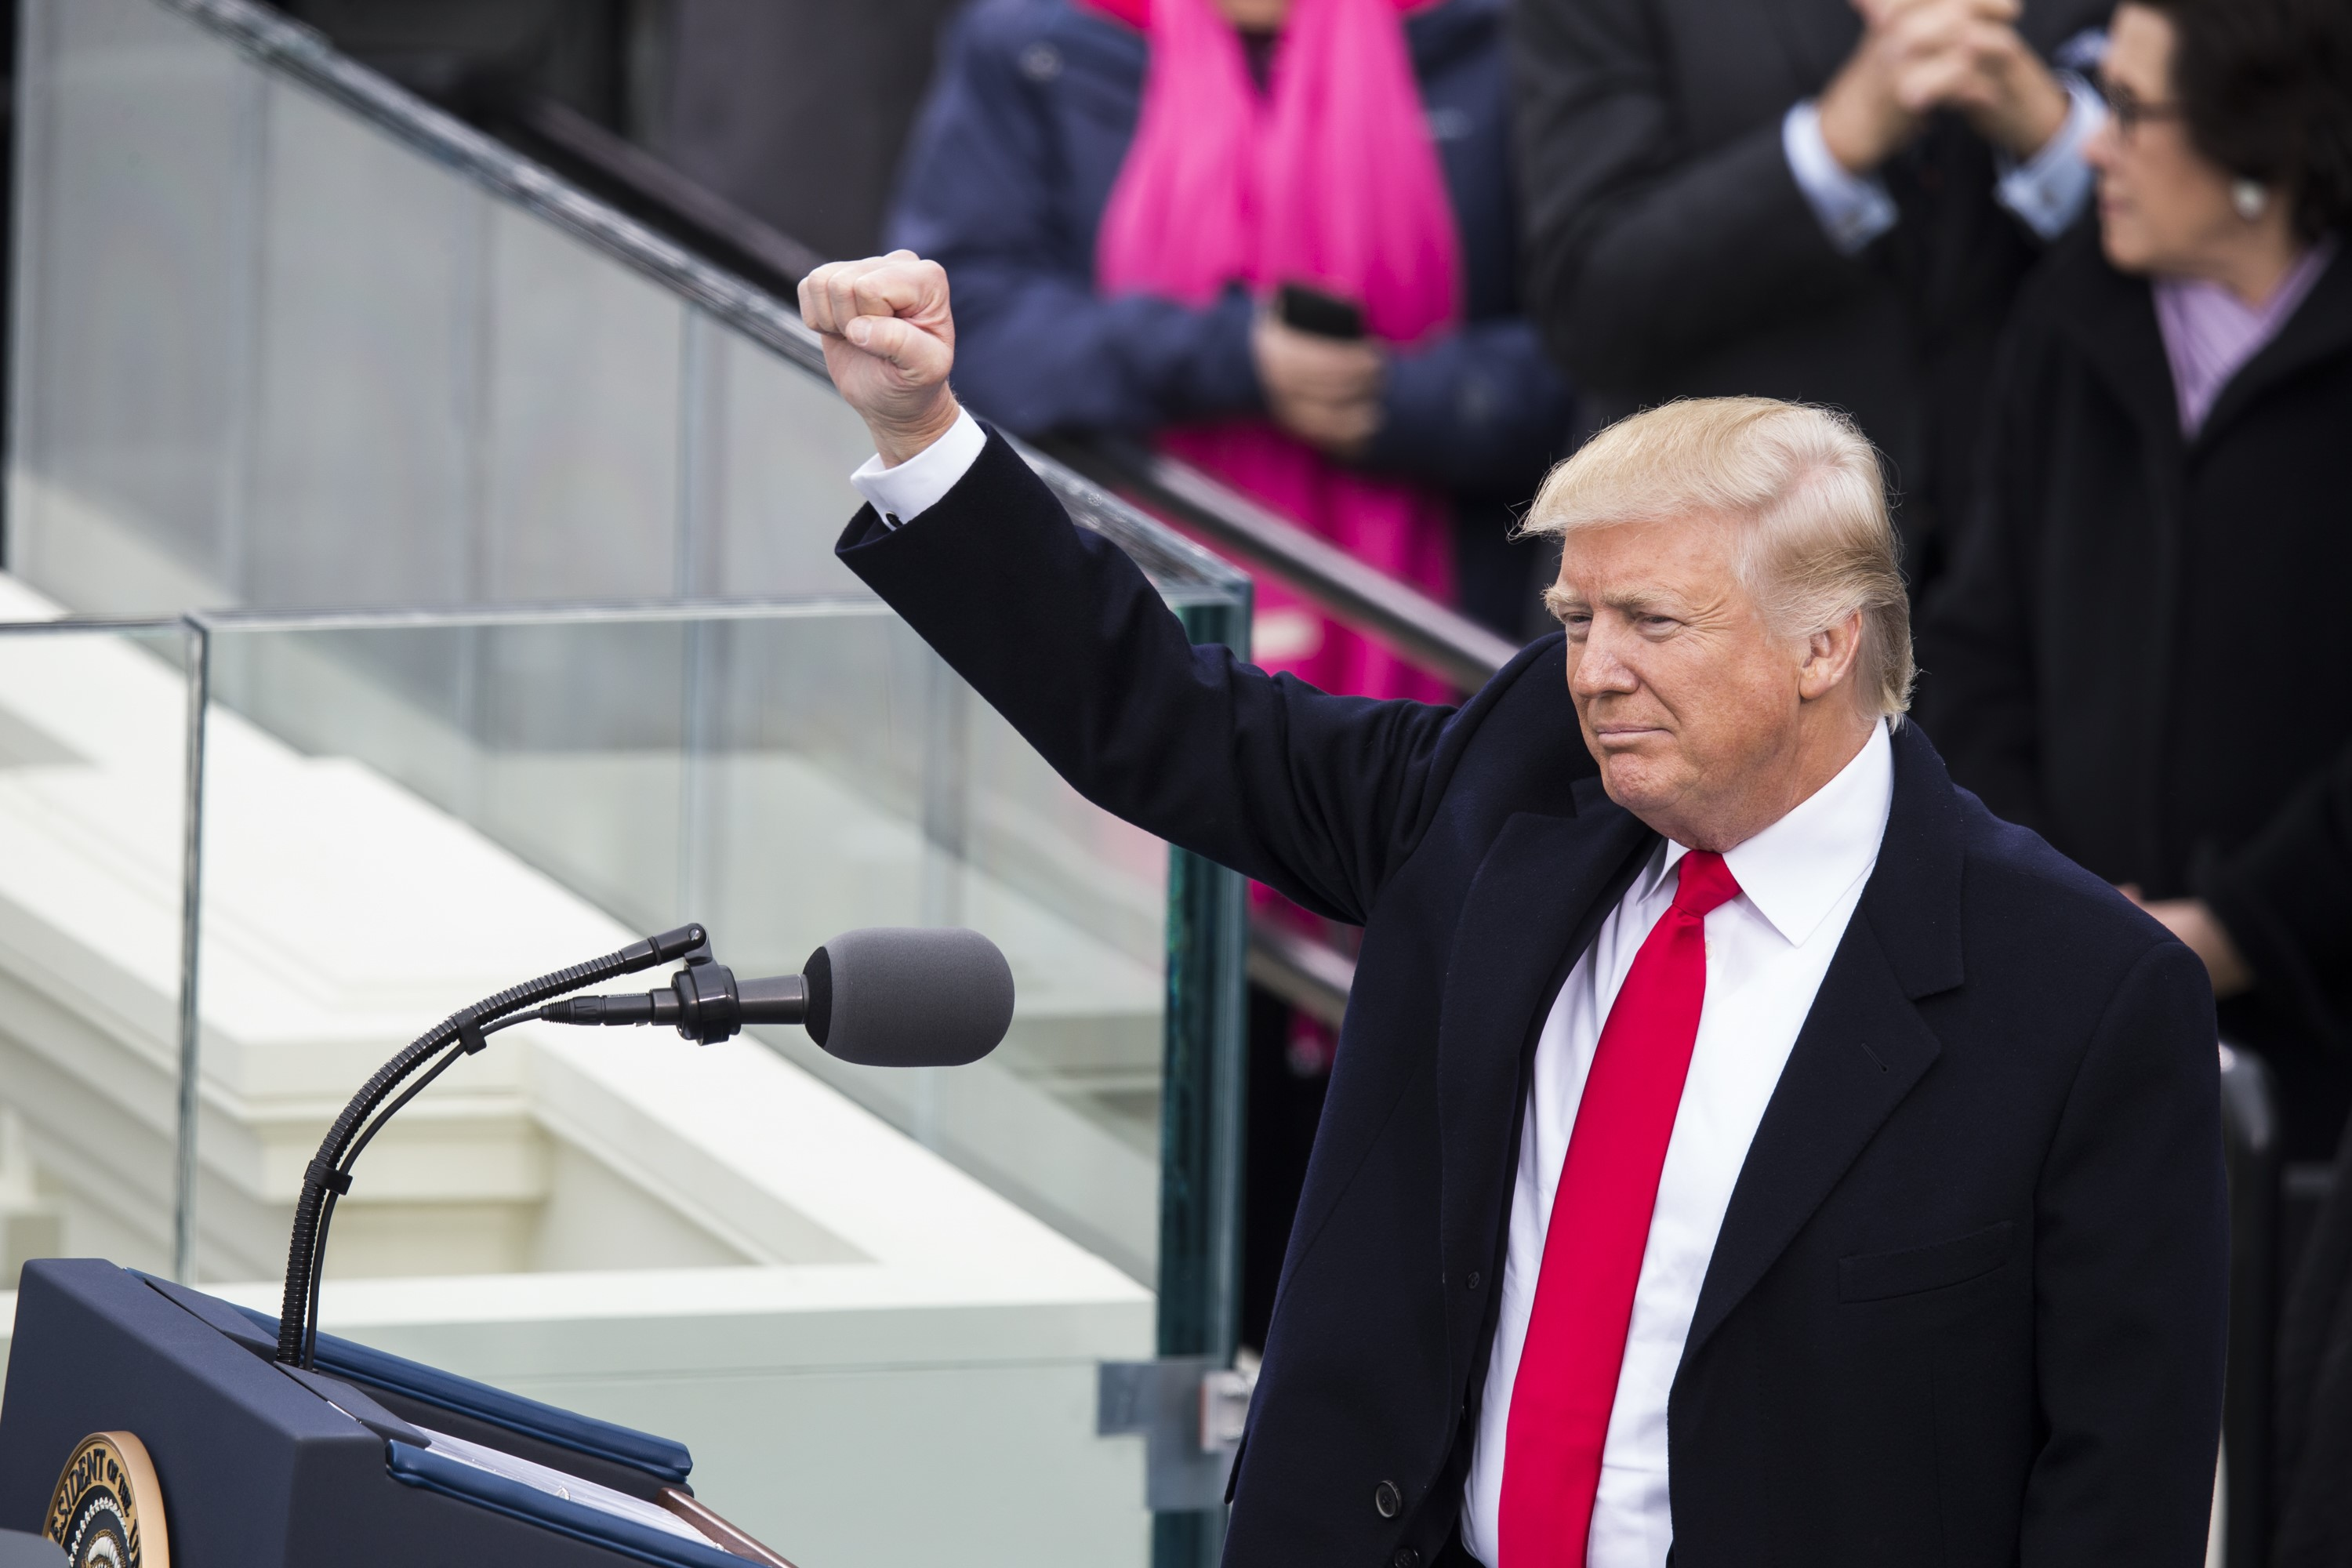 Trumps choice for us attorney general says he can stand up to him hindustan times - Indian Supporters Of Uttar Pradesh S Chief Minister Akhilesh Yadav Protestdonald Trump Is Sworn In As 45th